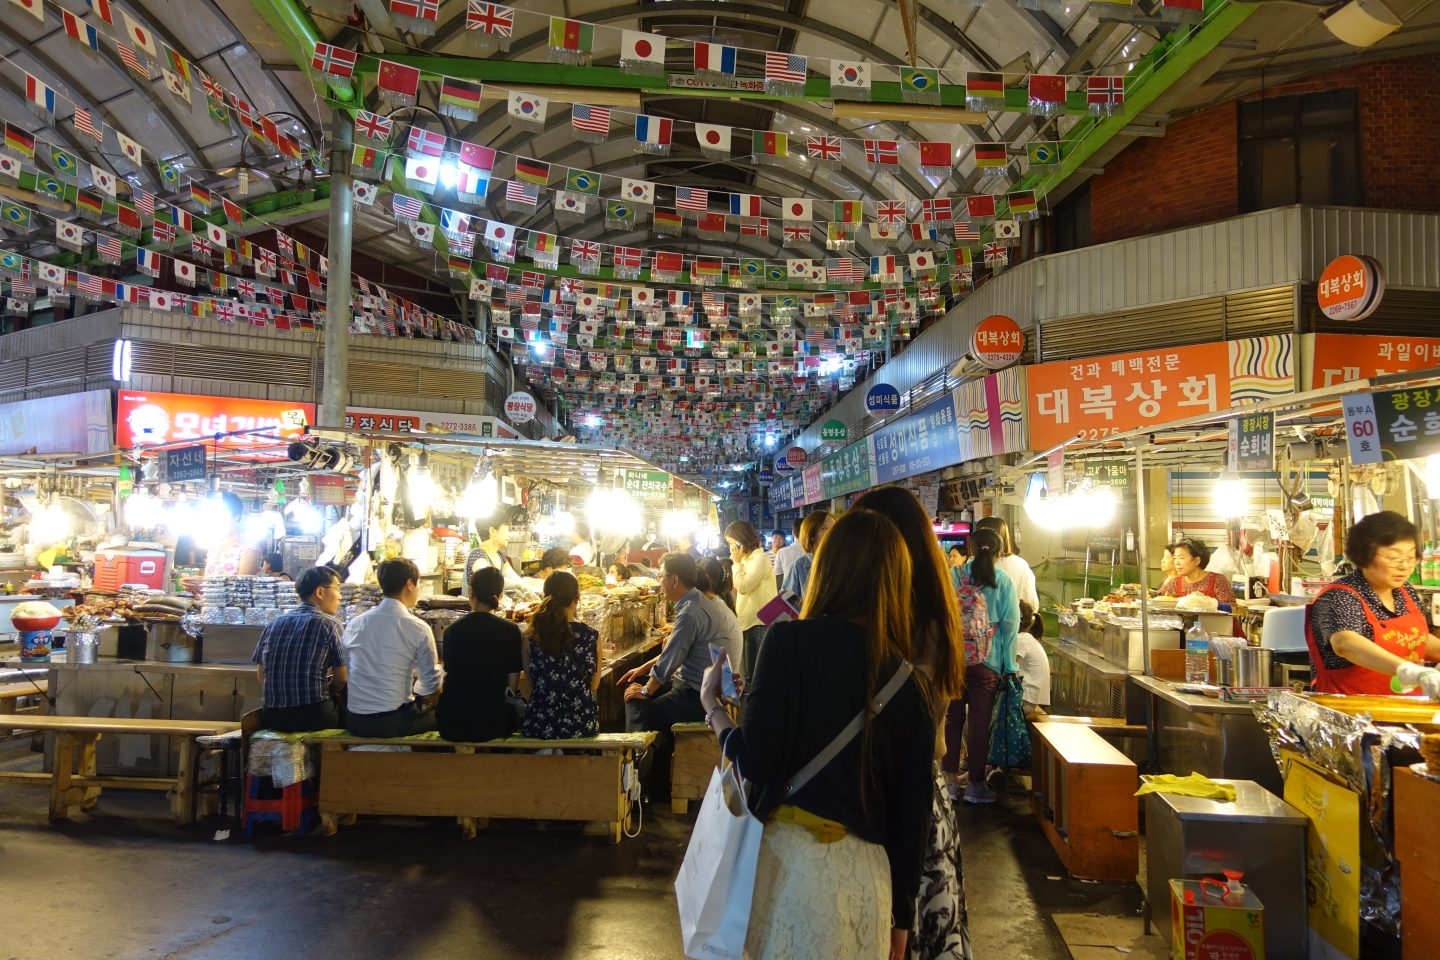 10 Things To Do in Seoul - Kwangjang Market